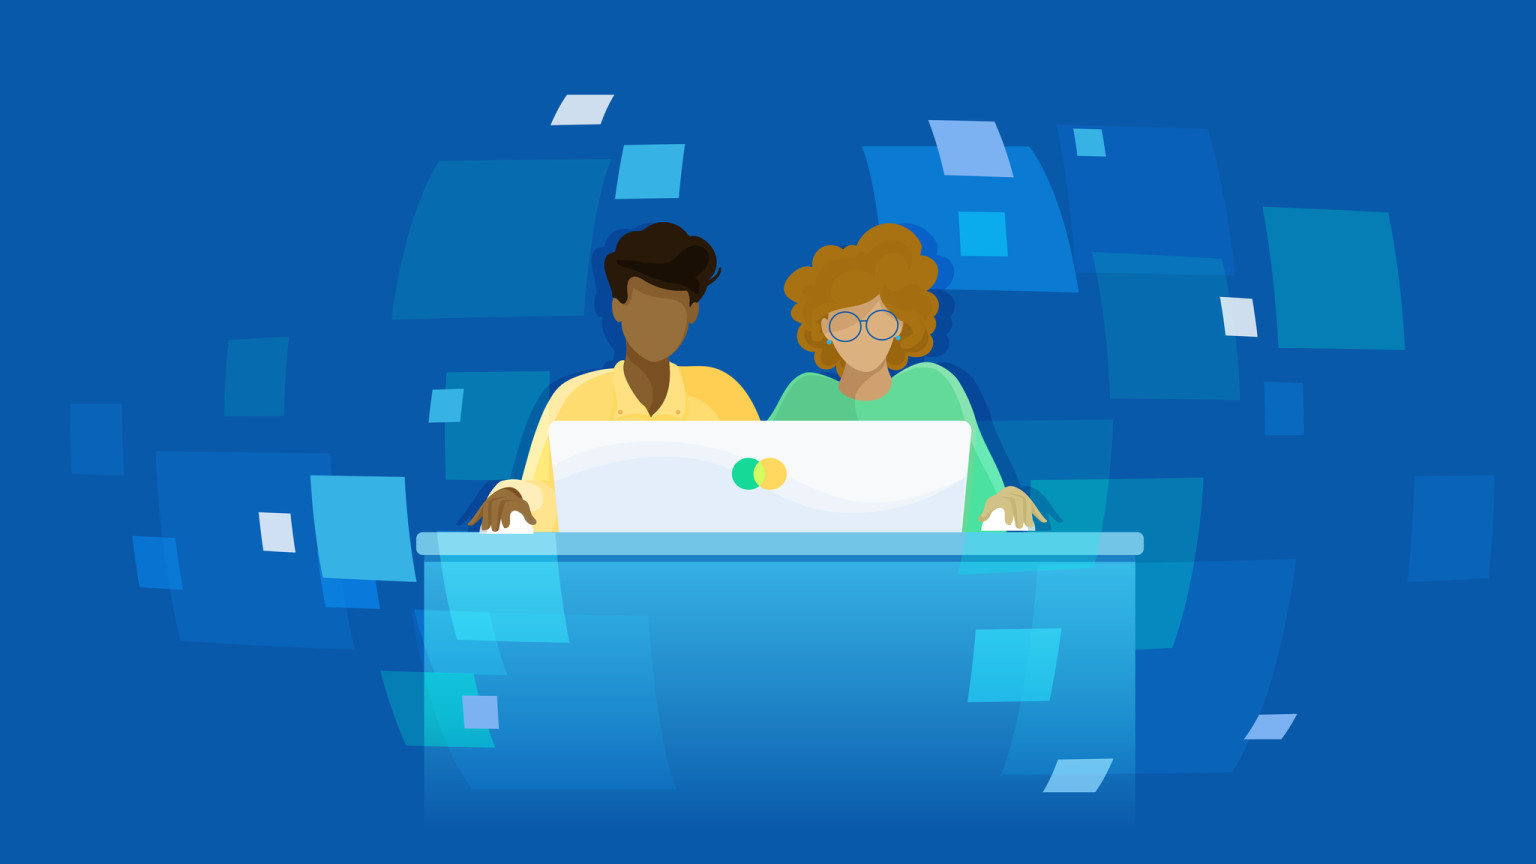 An illustration of two people sitting at a computer, each holding a mouse